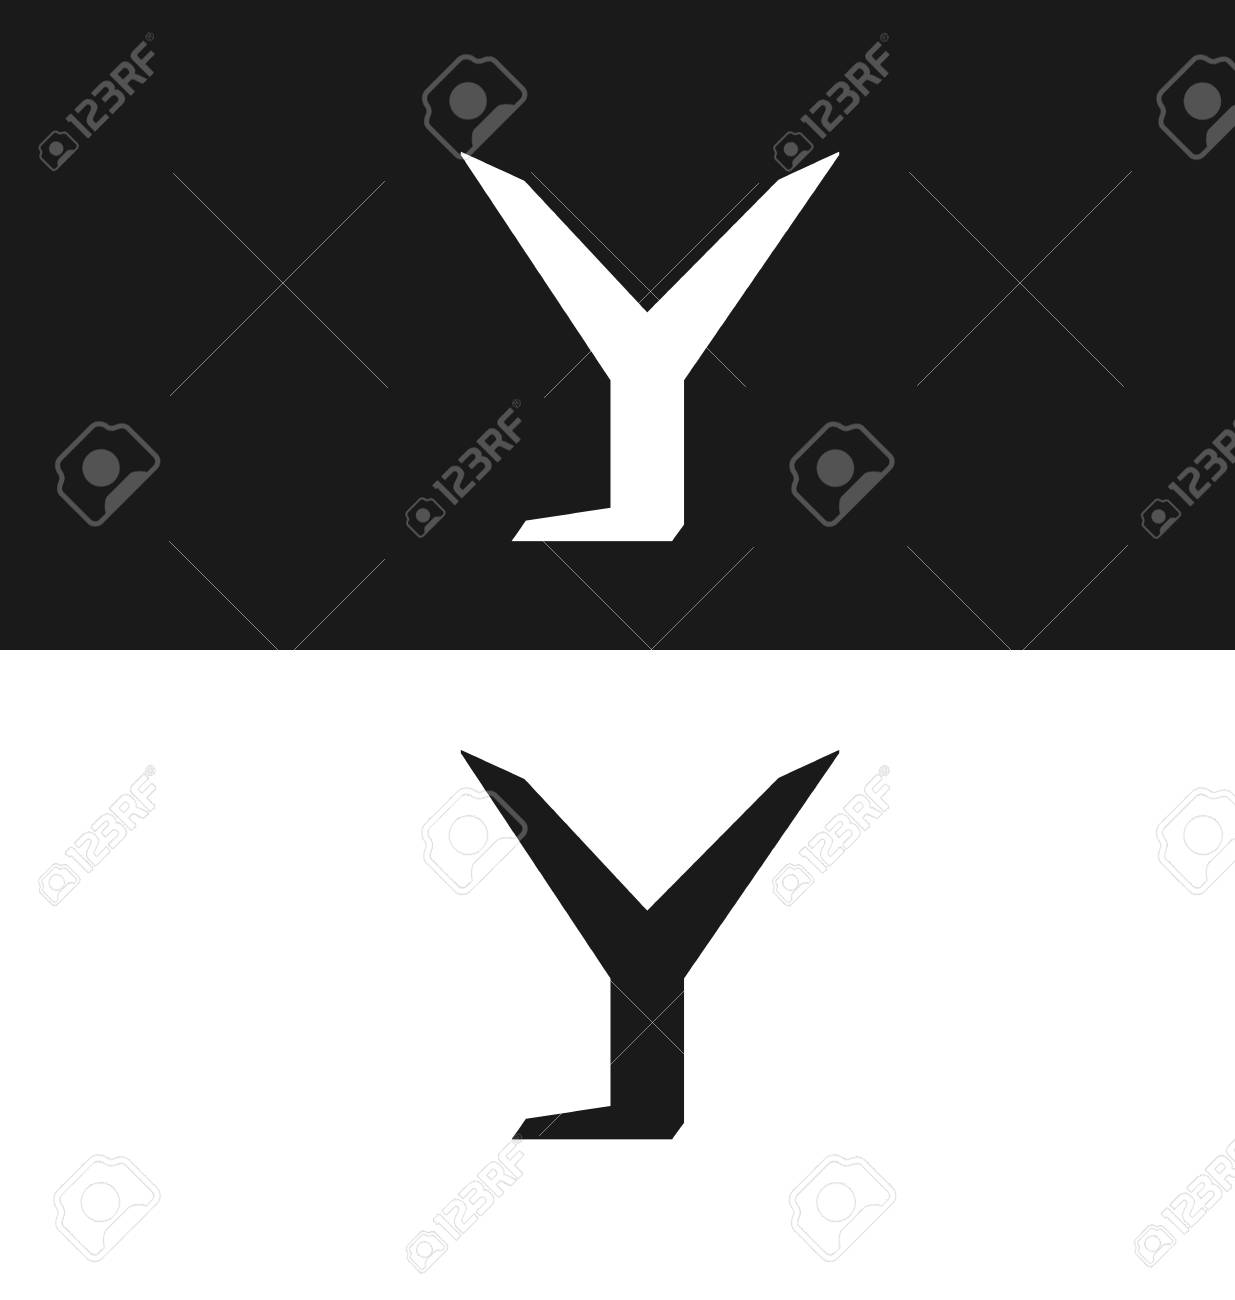 Letter Y Icon Design Template Black And White Version Royalty Free